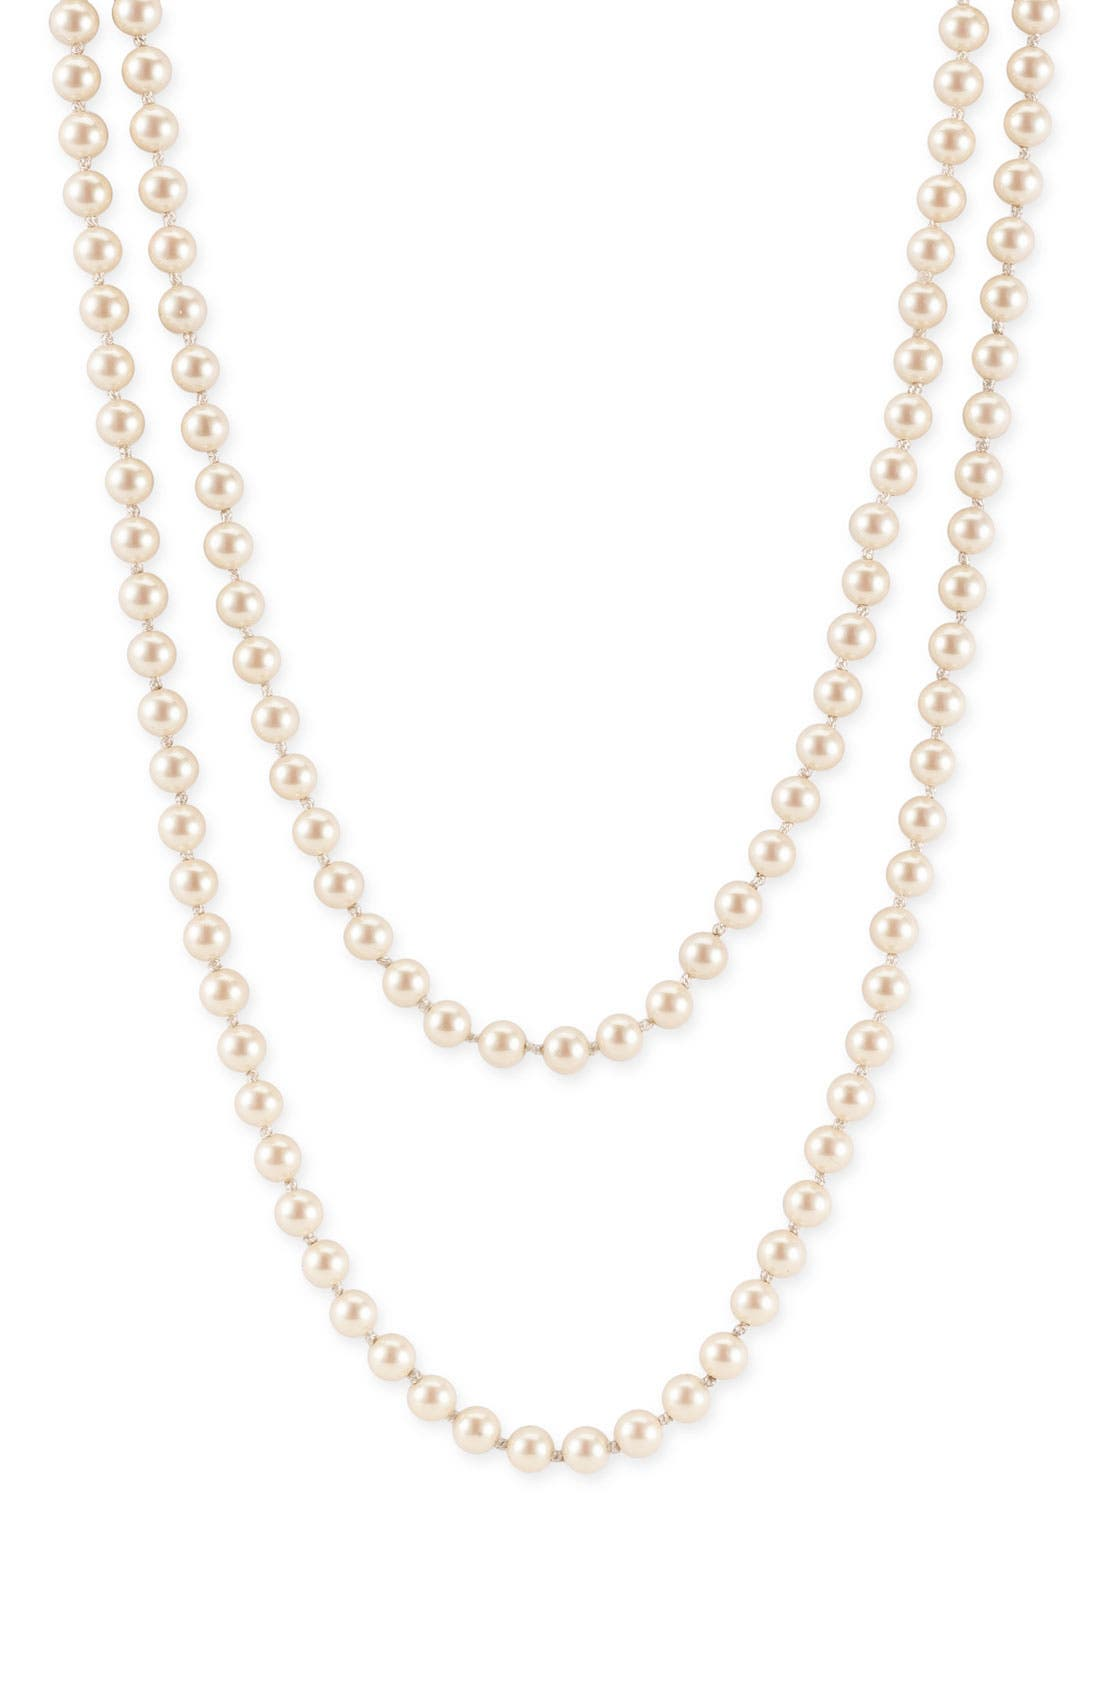 Main Image - Nordstrom 6mm Glass Pearl Extra Long Strand Necklace